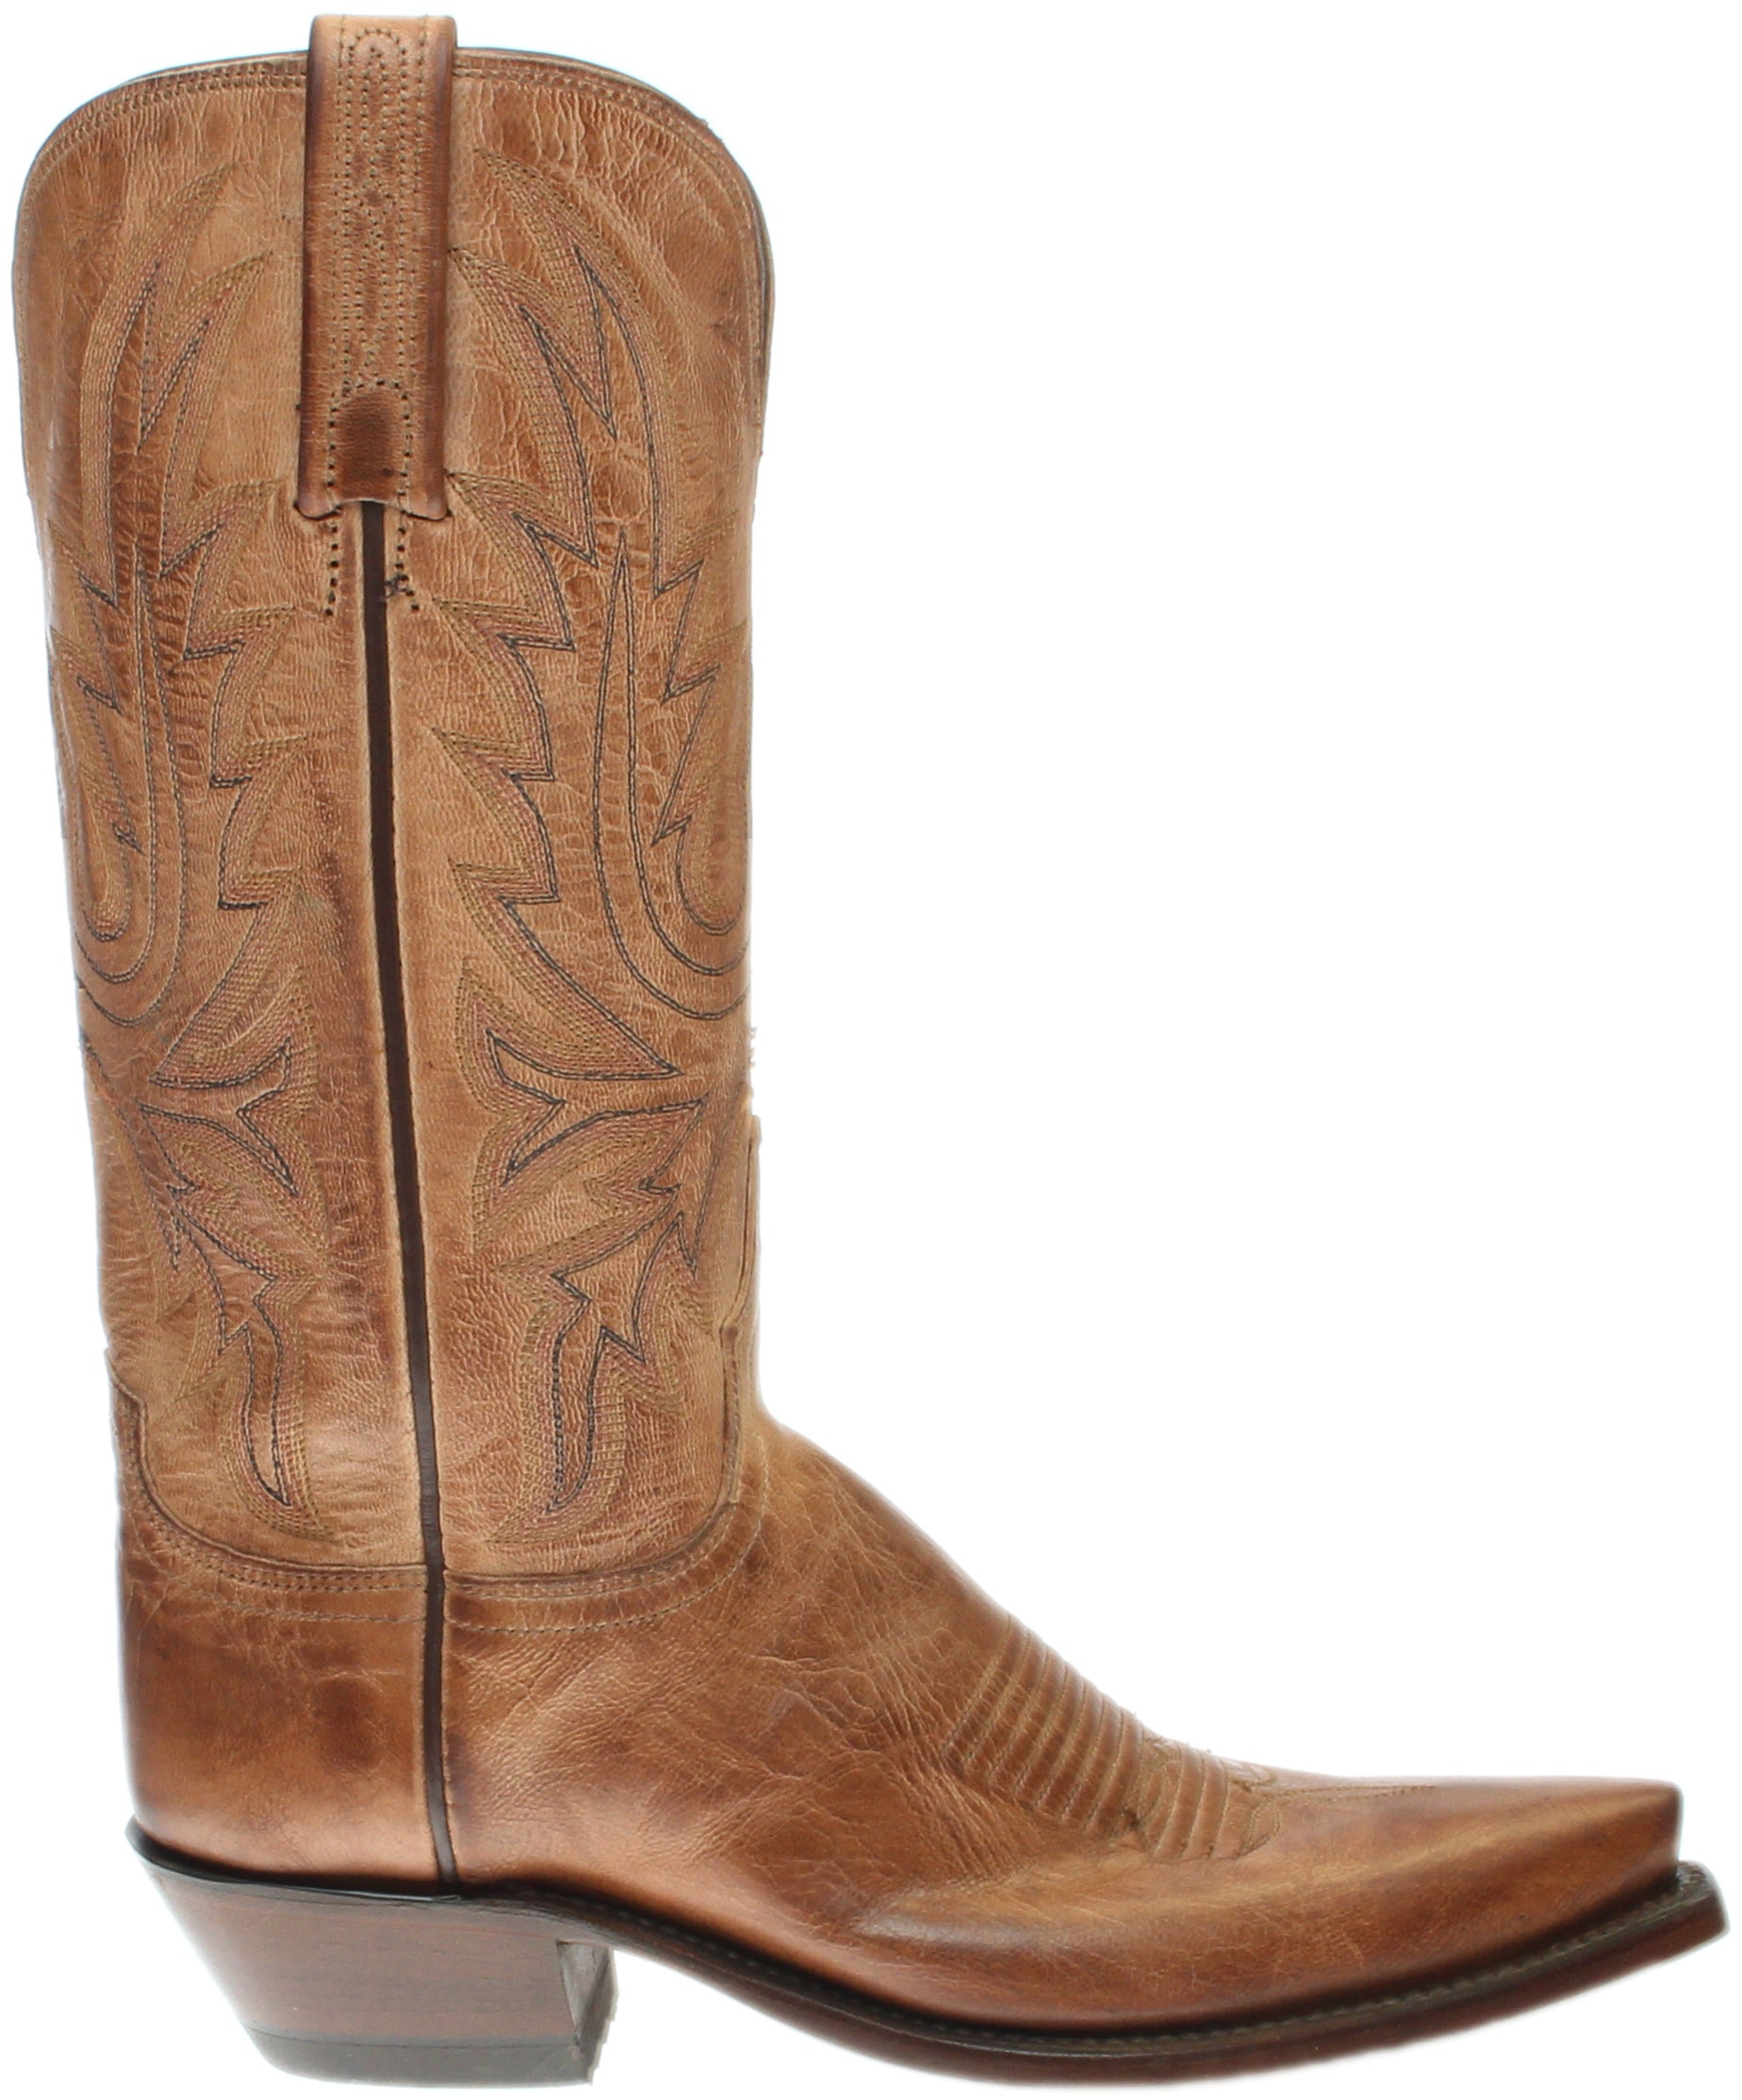 Lucchese Savannah - Tan - Womens